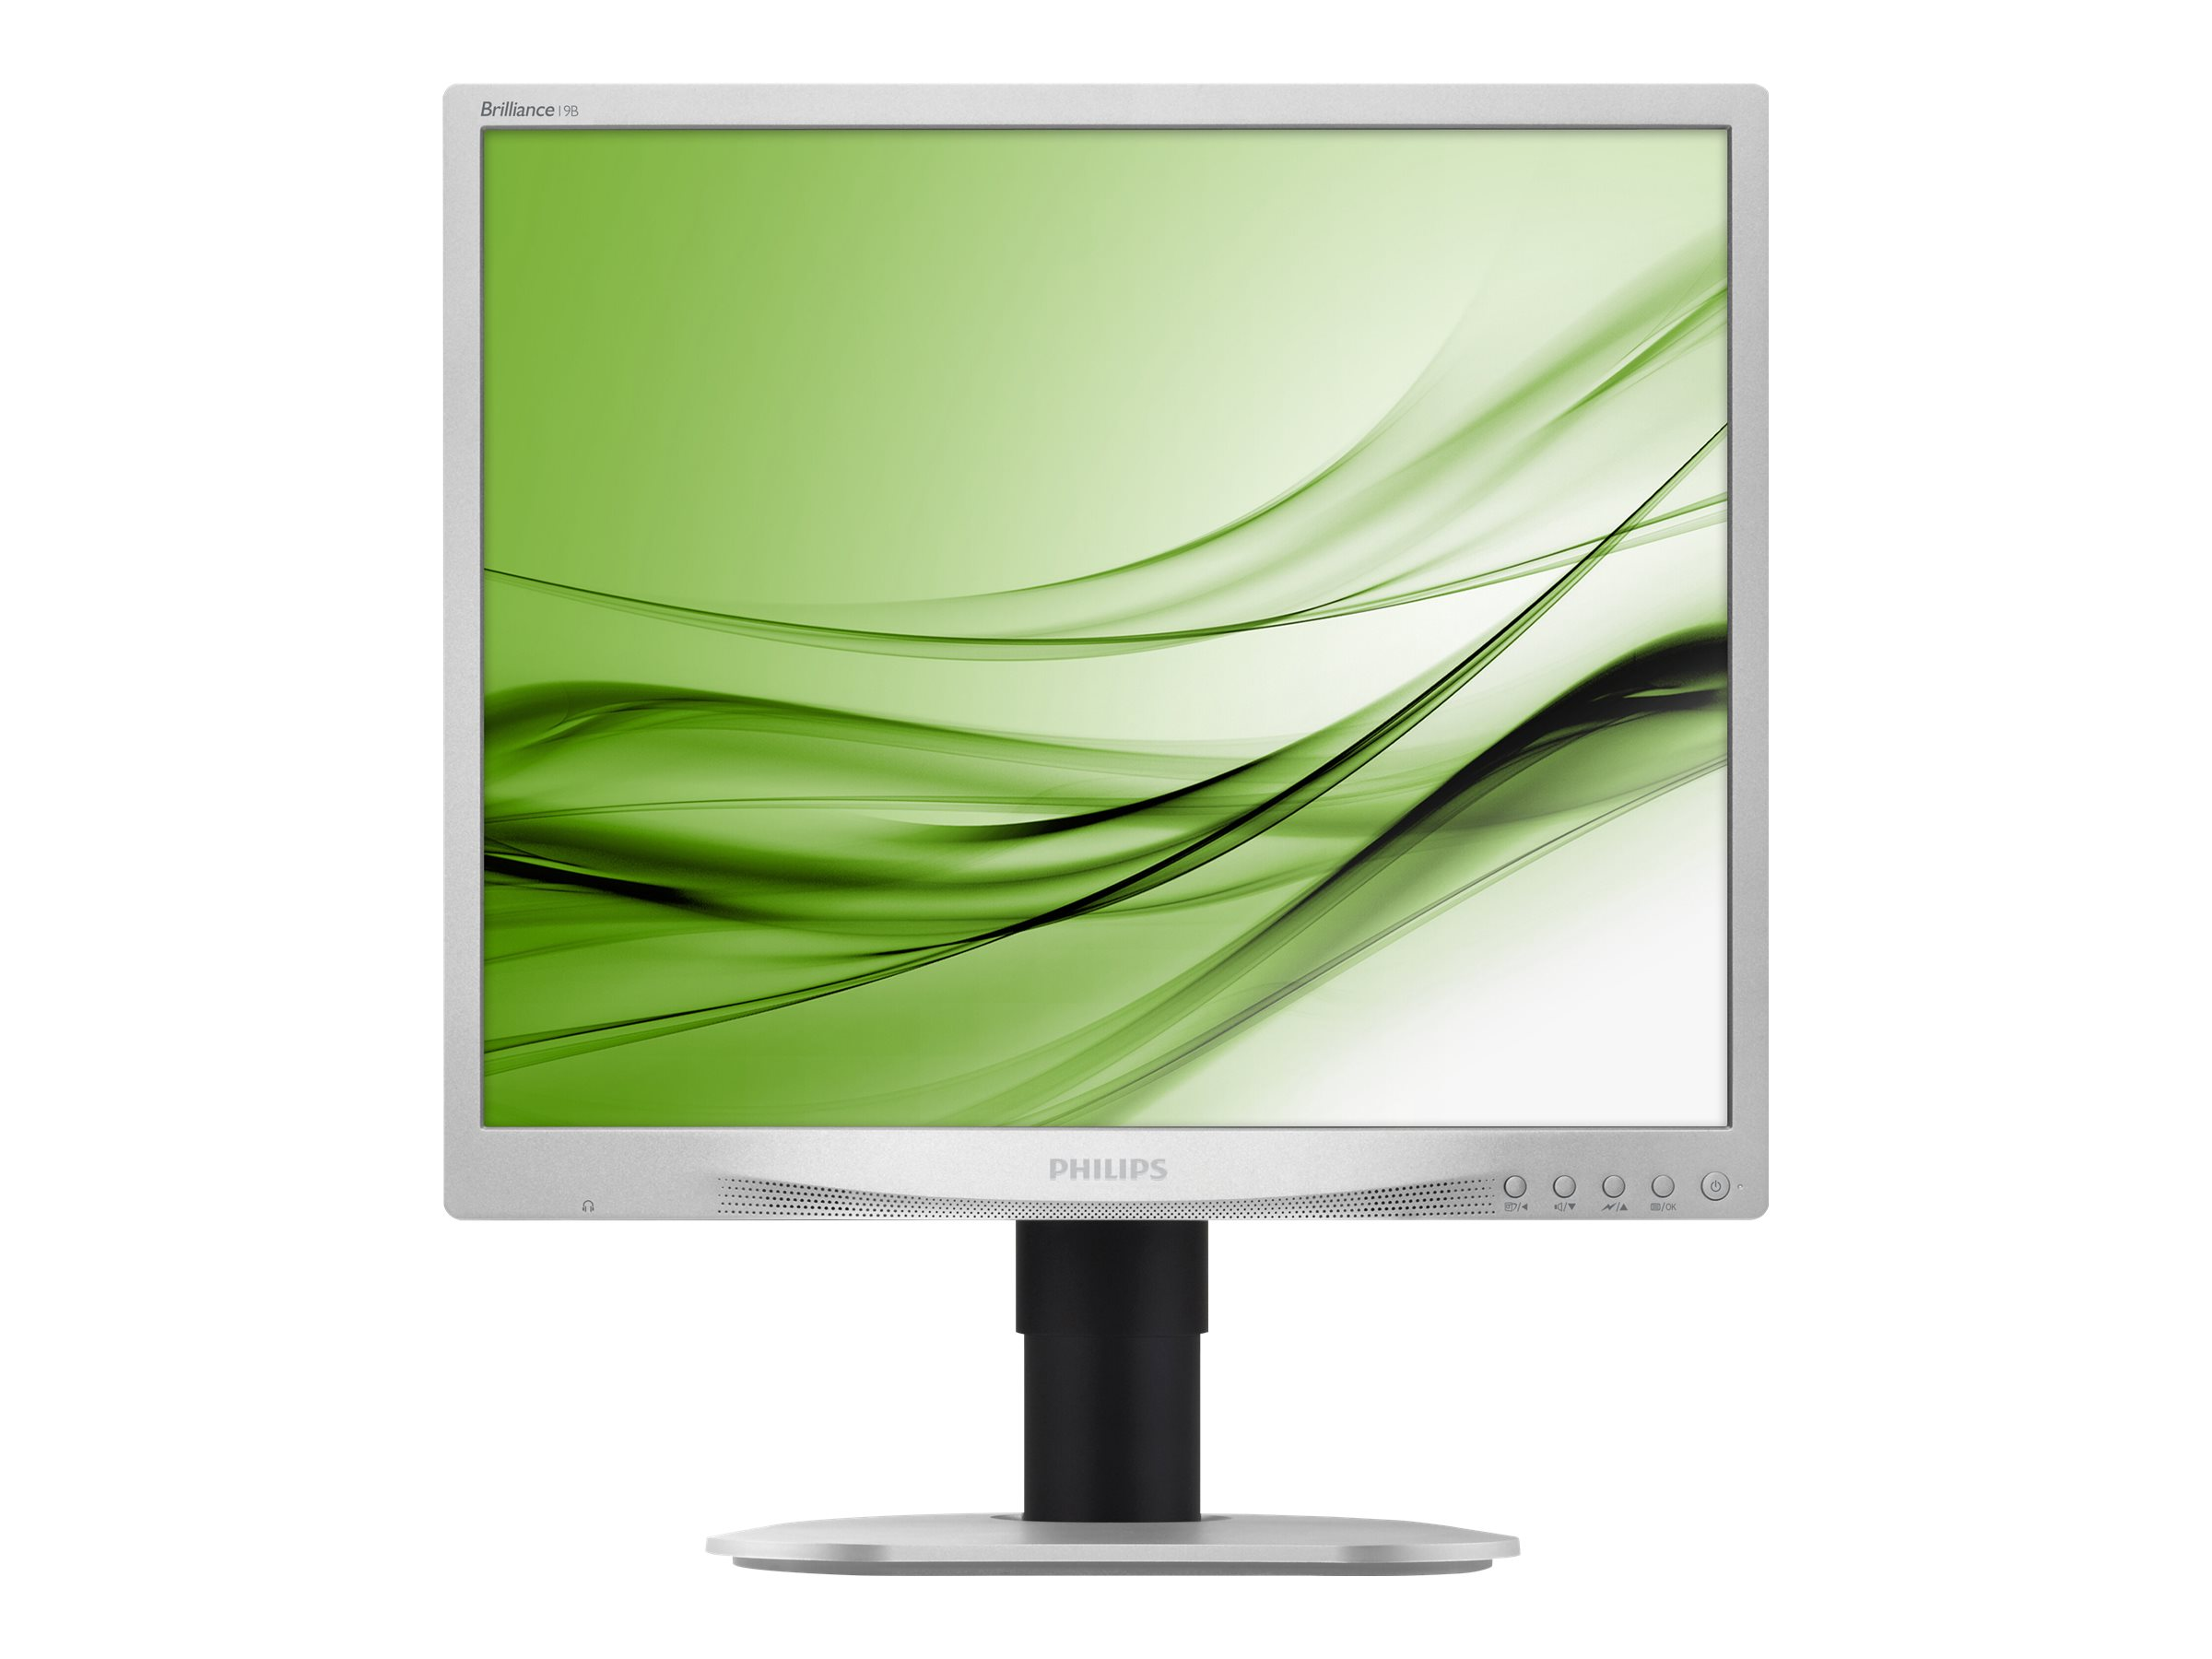 Philips Brilliance B-line 19B4LCS5 - LED-Monitor - 48.3 cm (19